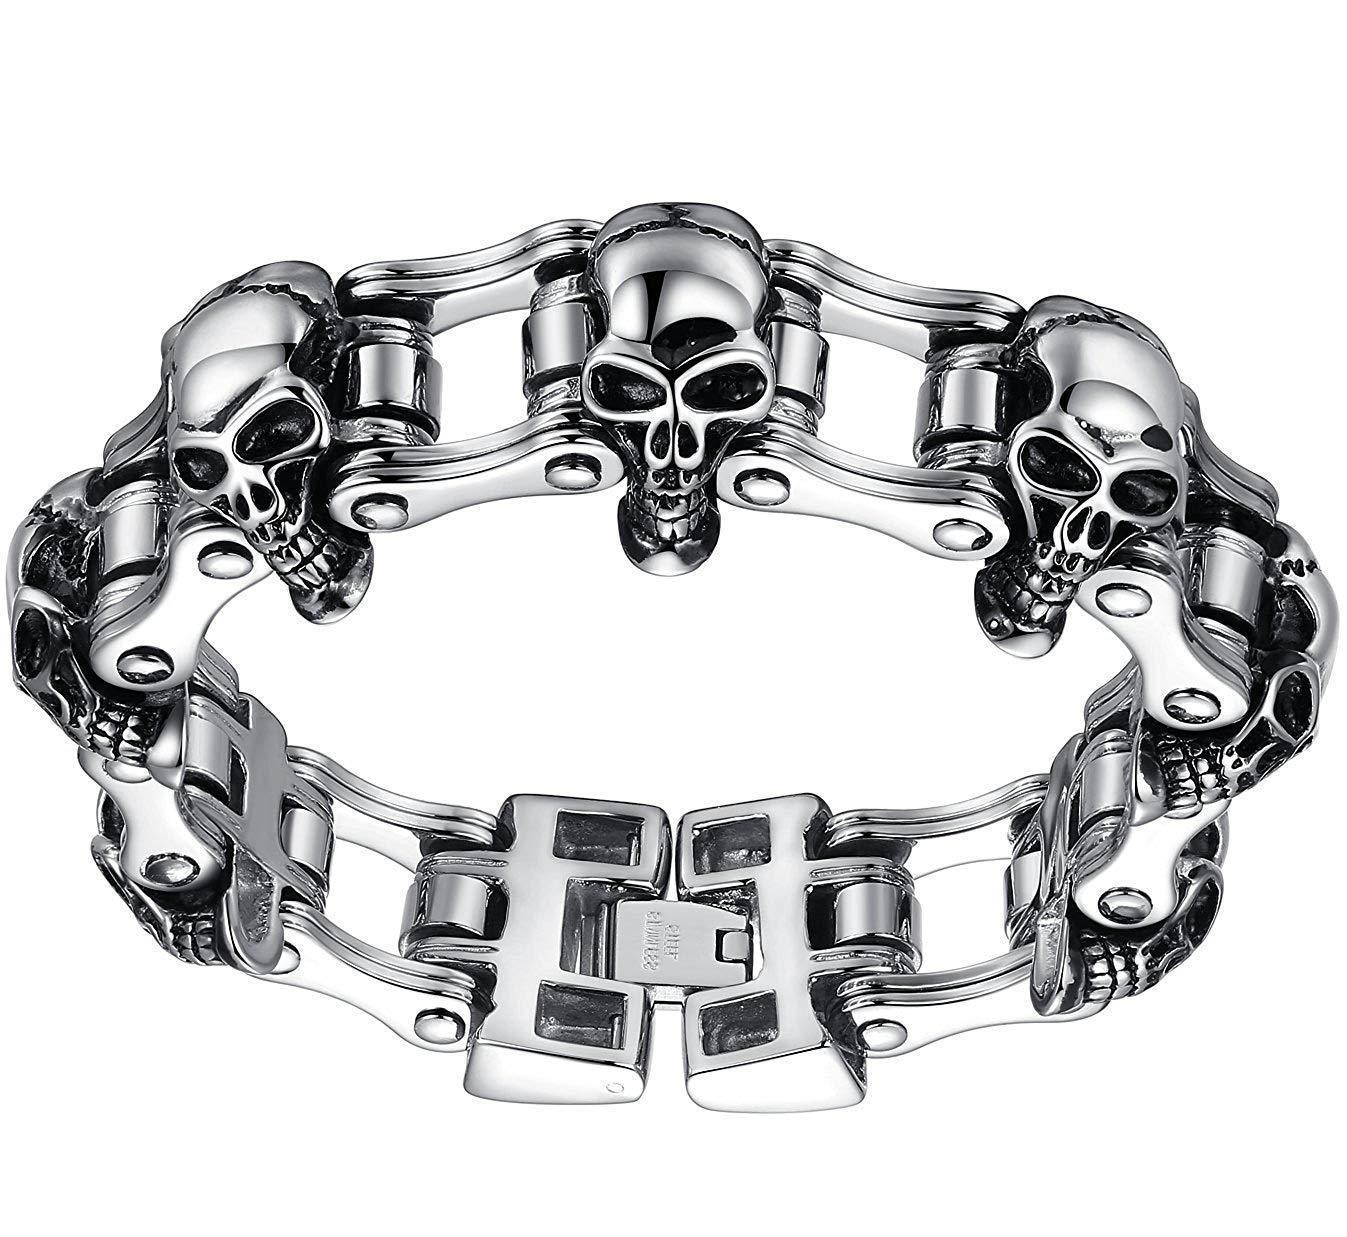 Aoiy Men's Stainless Steel Gothic Skull Bicycle Chain Large and Heavy Biker Bracelet